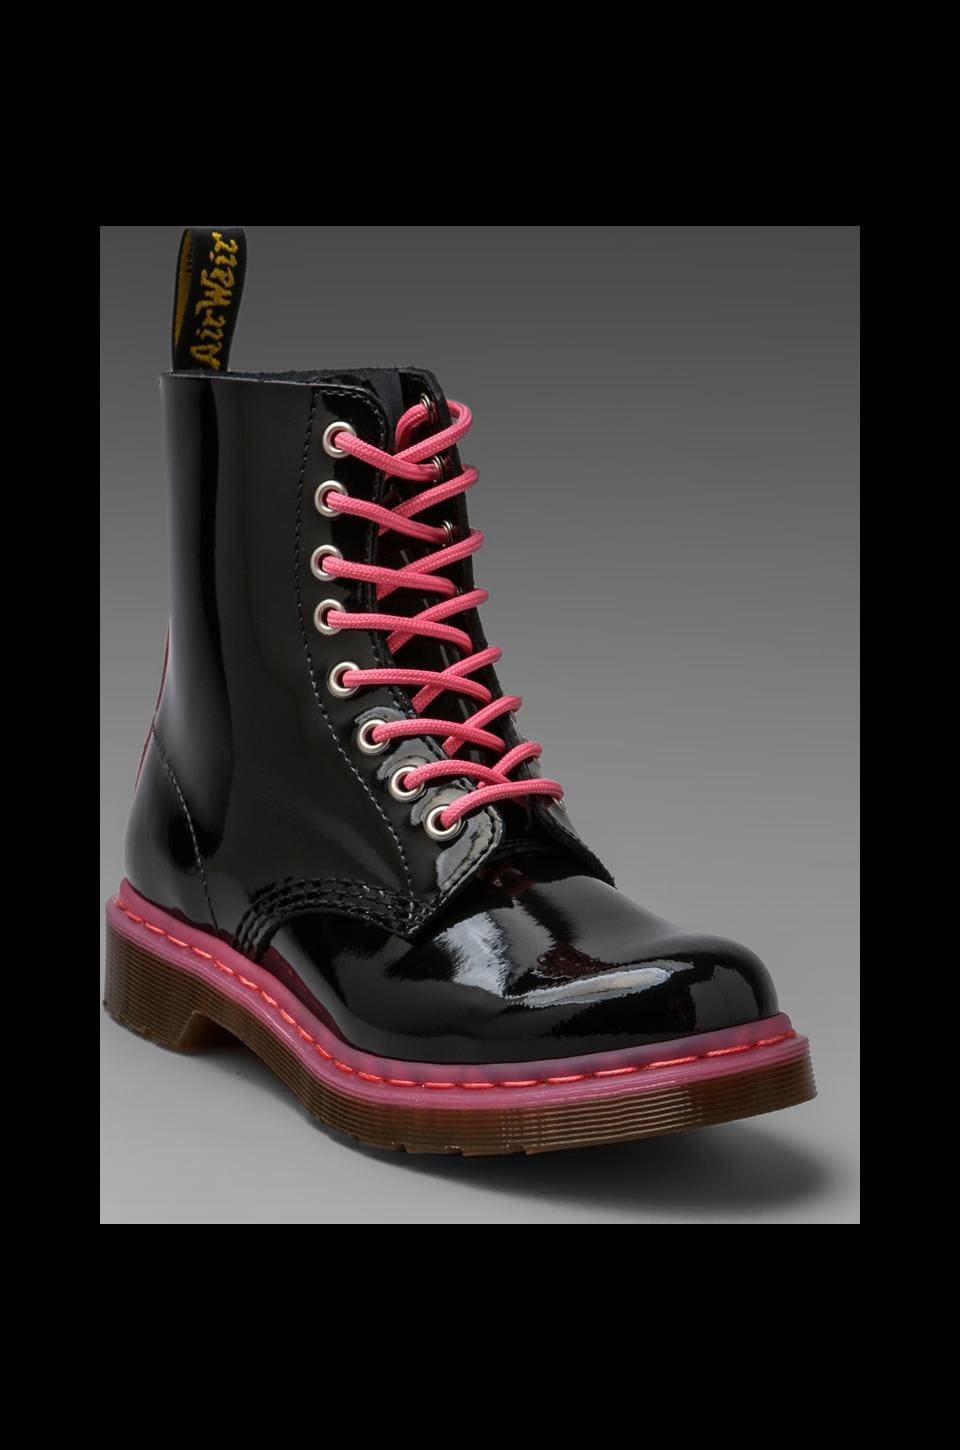 Dr. Martens Pascal 8-Eye Boot in Black/Acid Pink